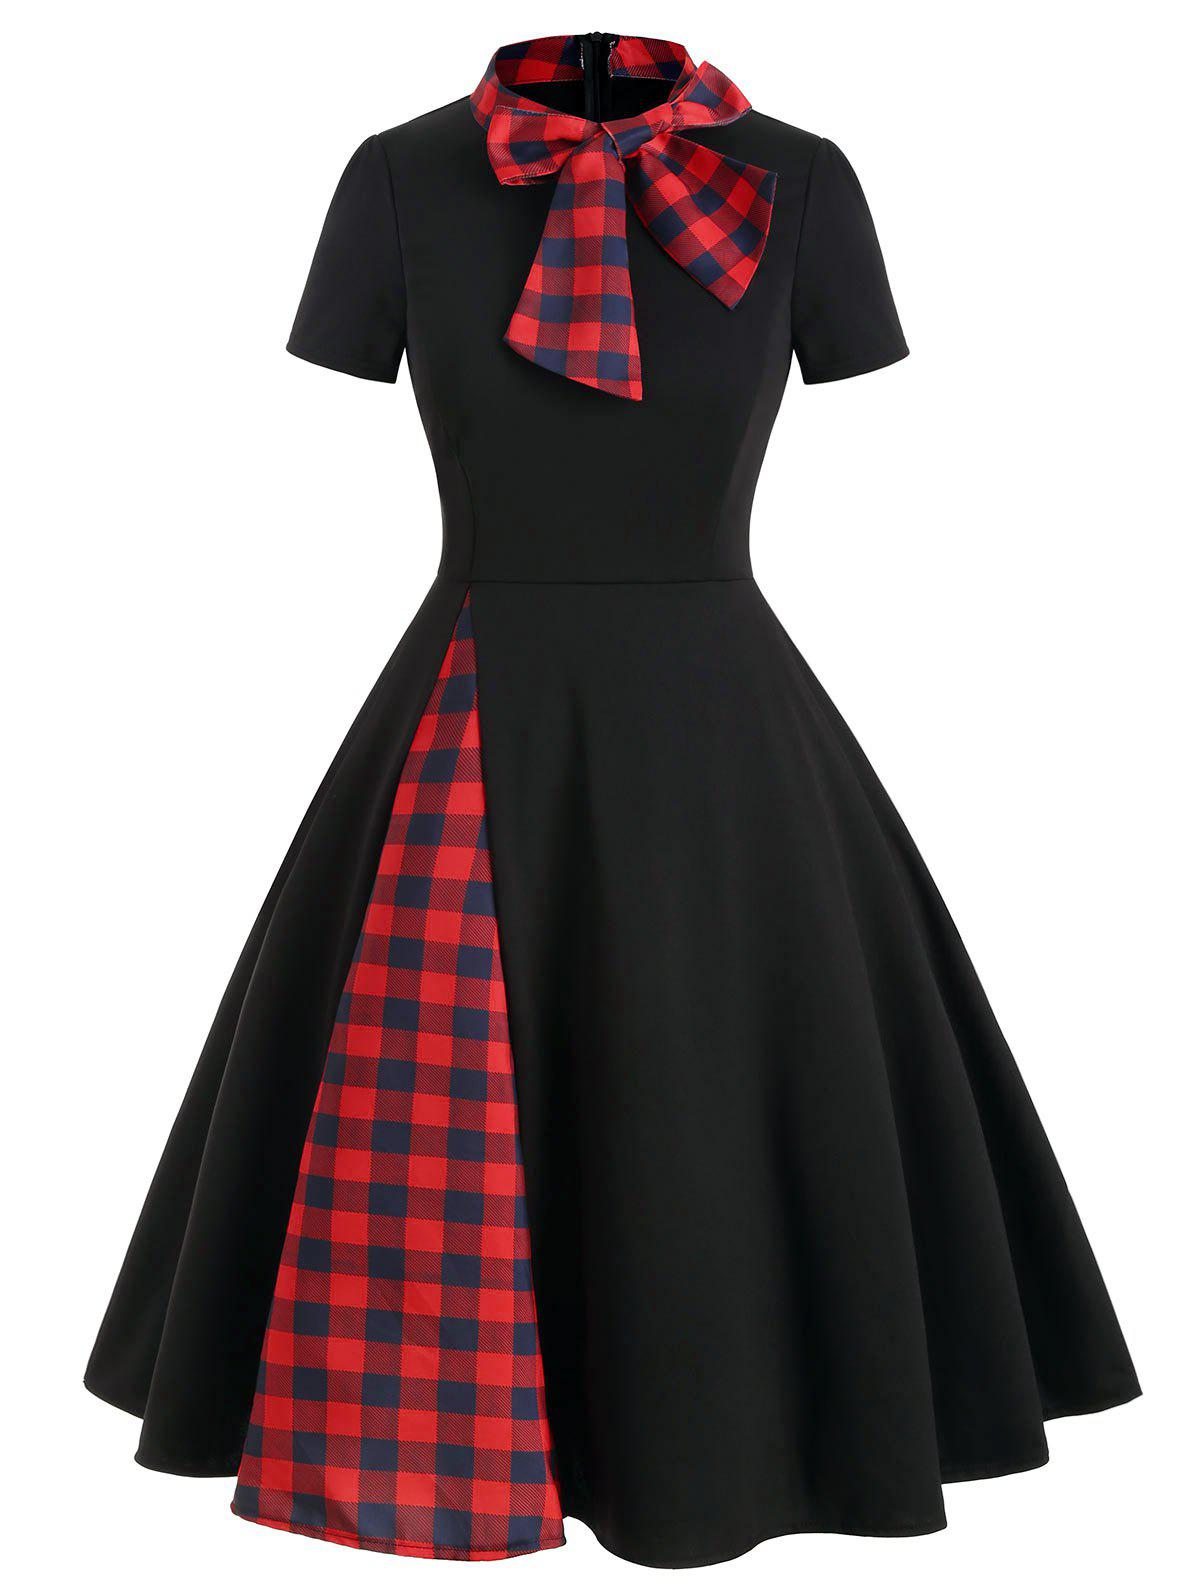 Plaid Panel Bow Tie Vintage Rockabilly Style A Line Dress - BLACK S